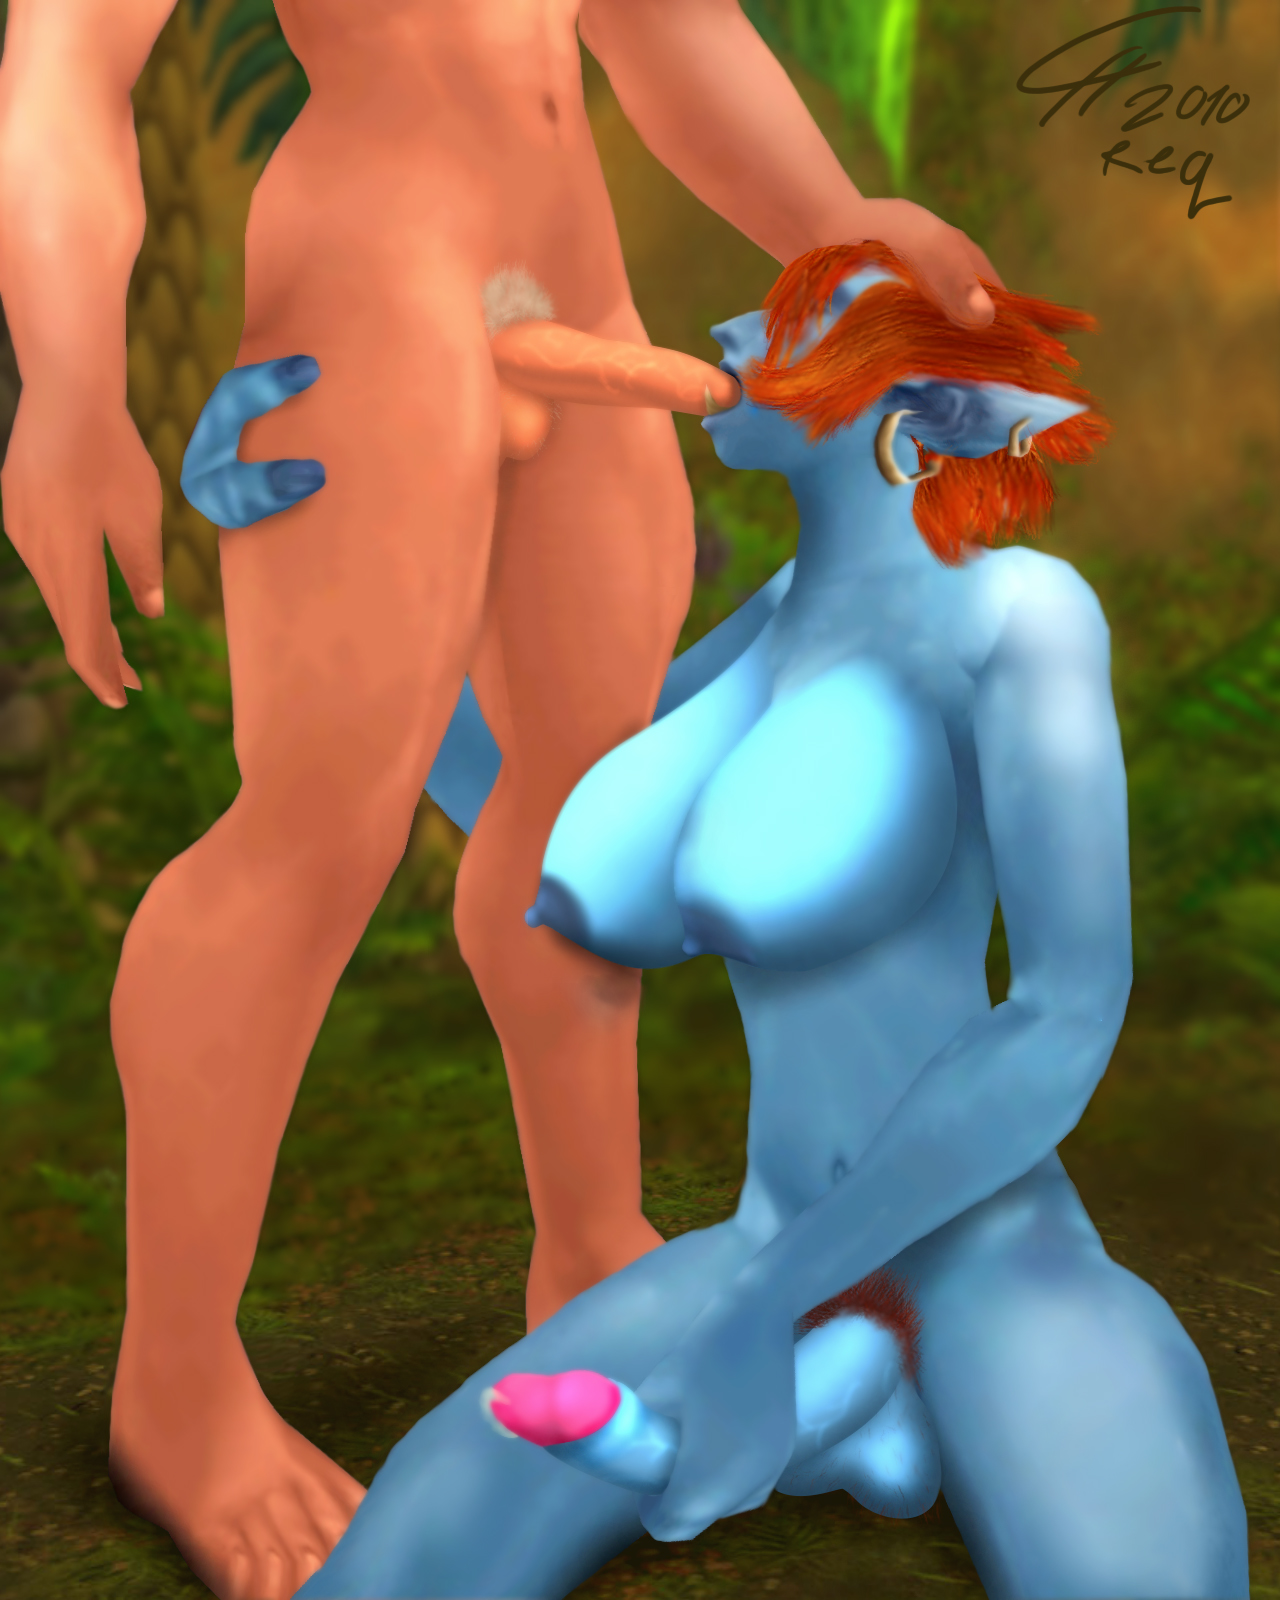 Free nude elfin 3d video exposed clip